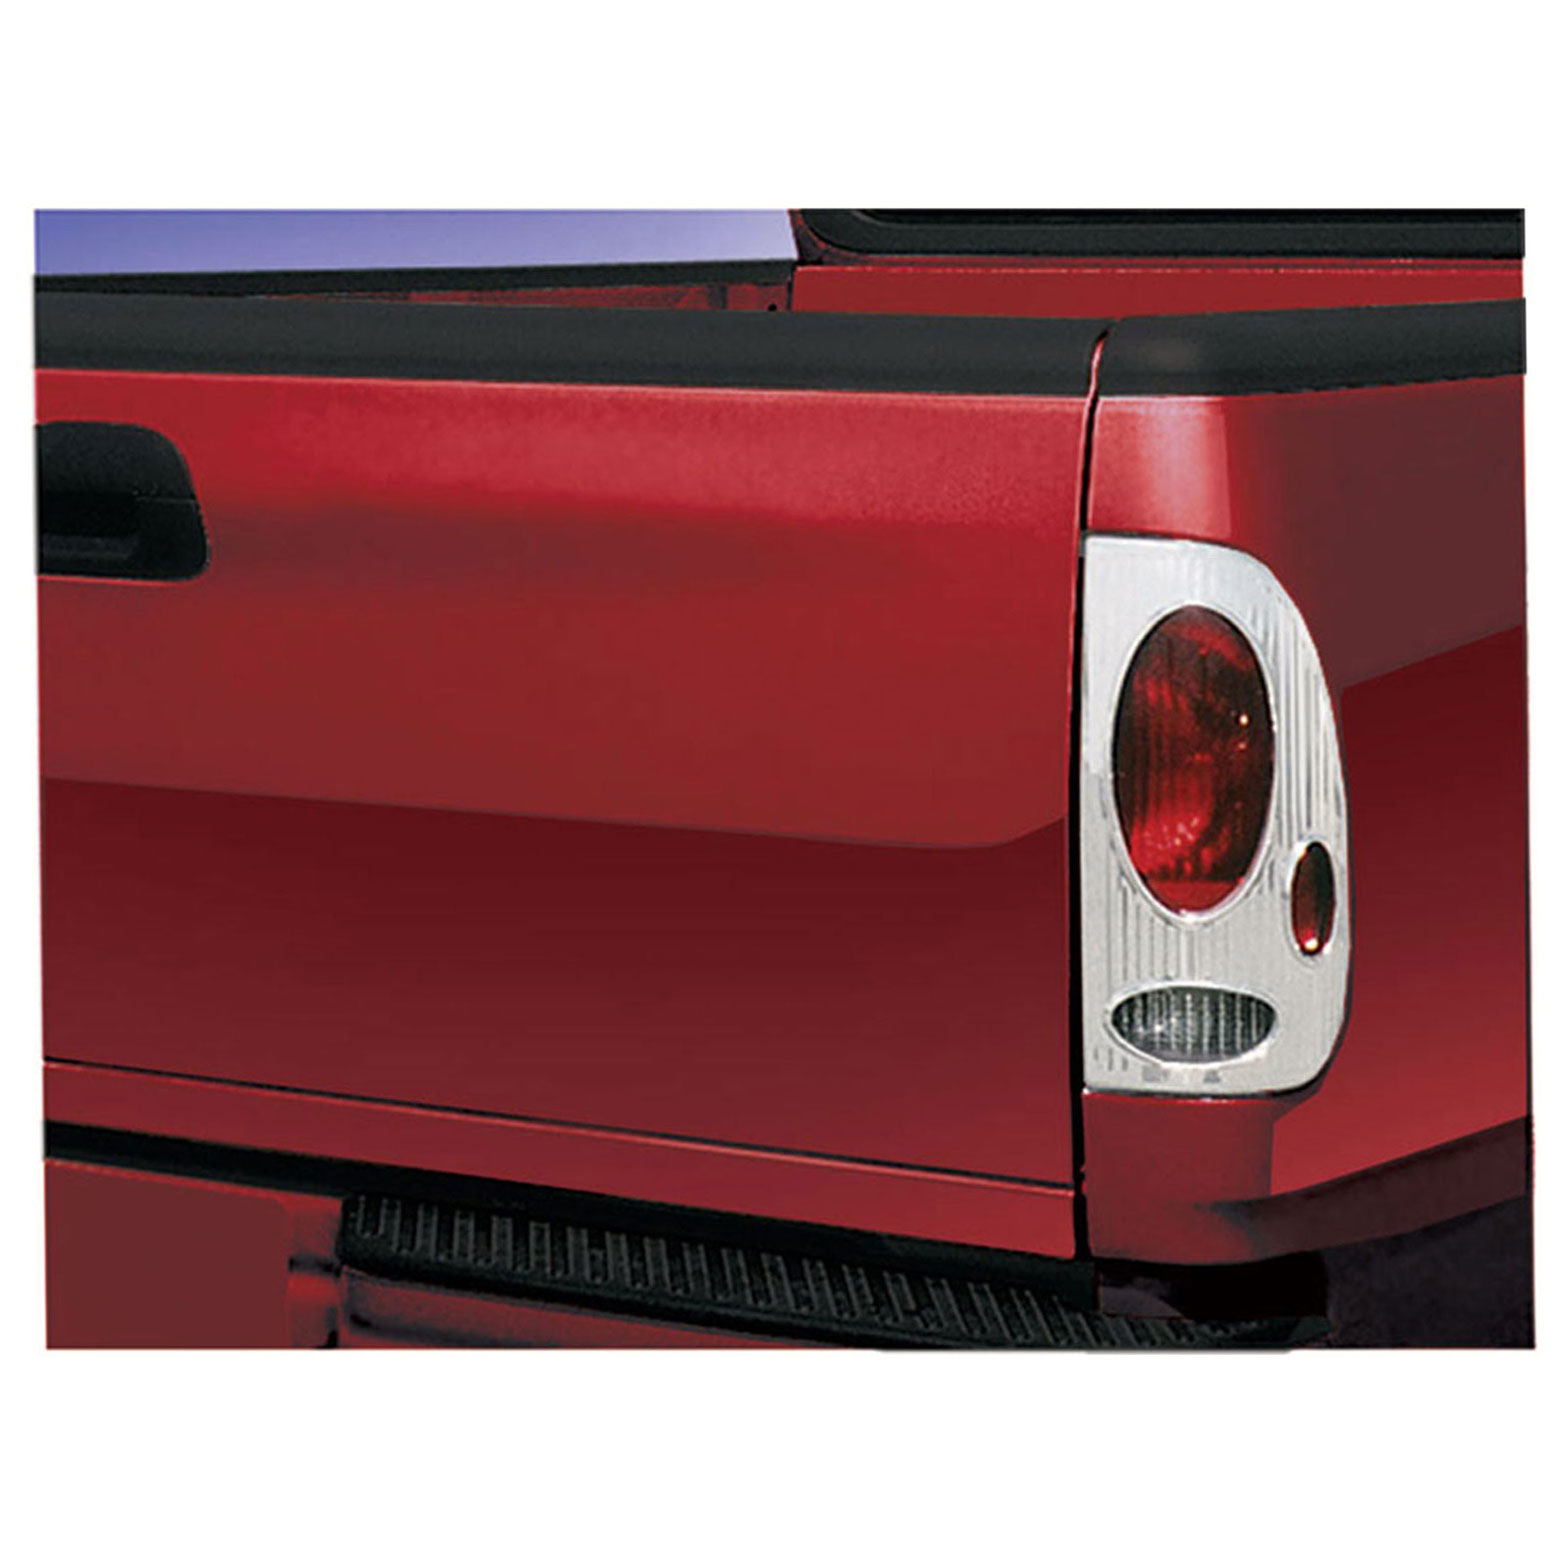 For Ford F-150 Fleetside 1997-2003 Chrome Taillight Covers